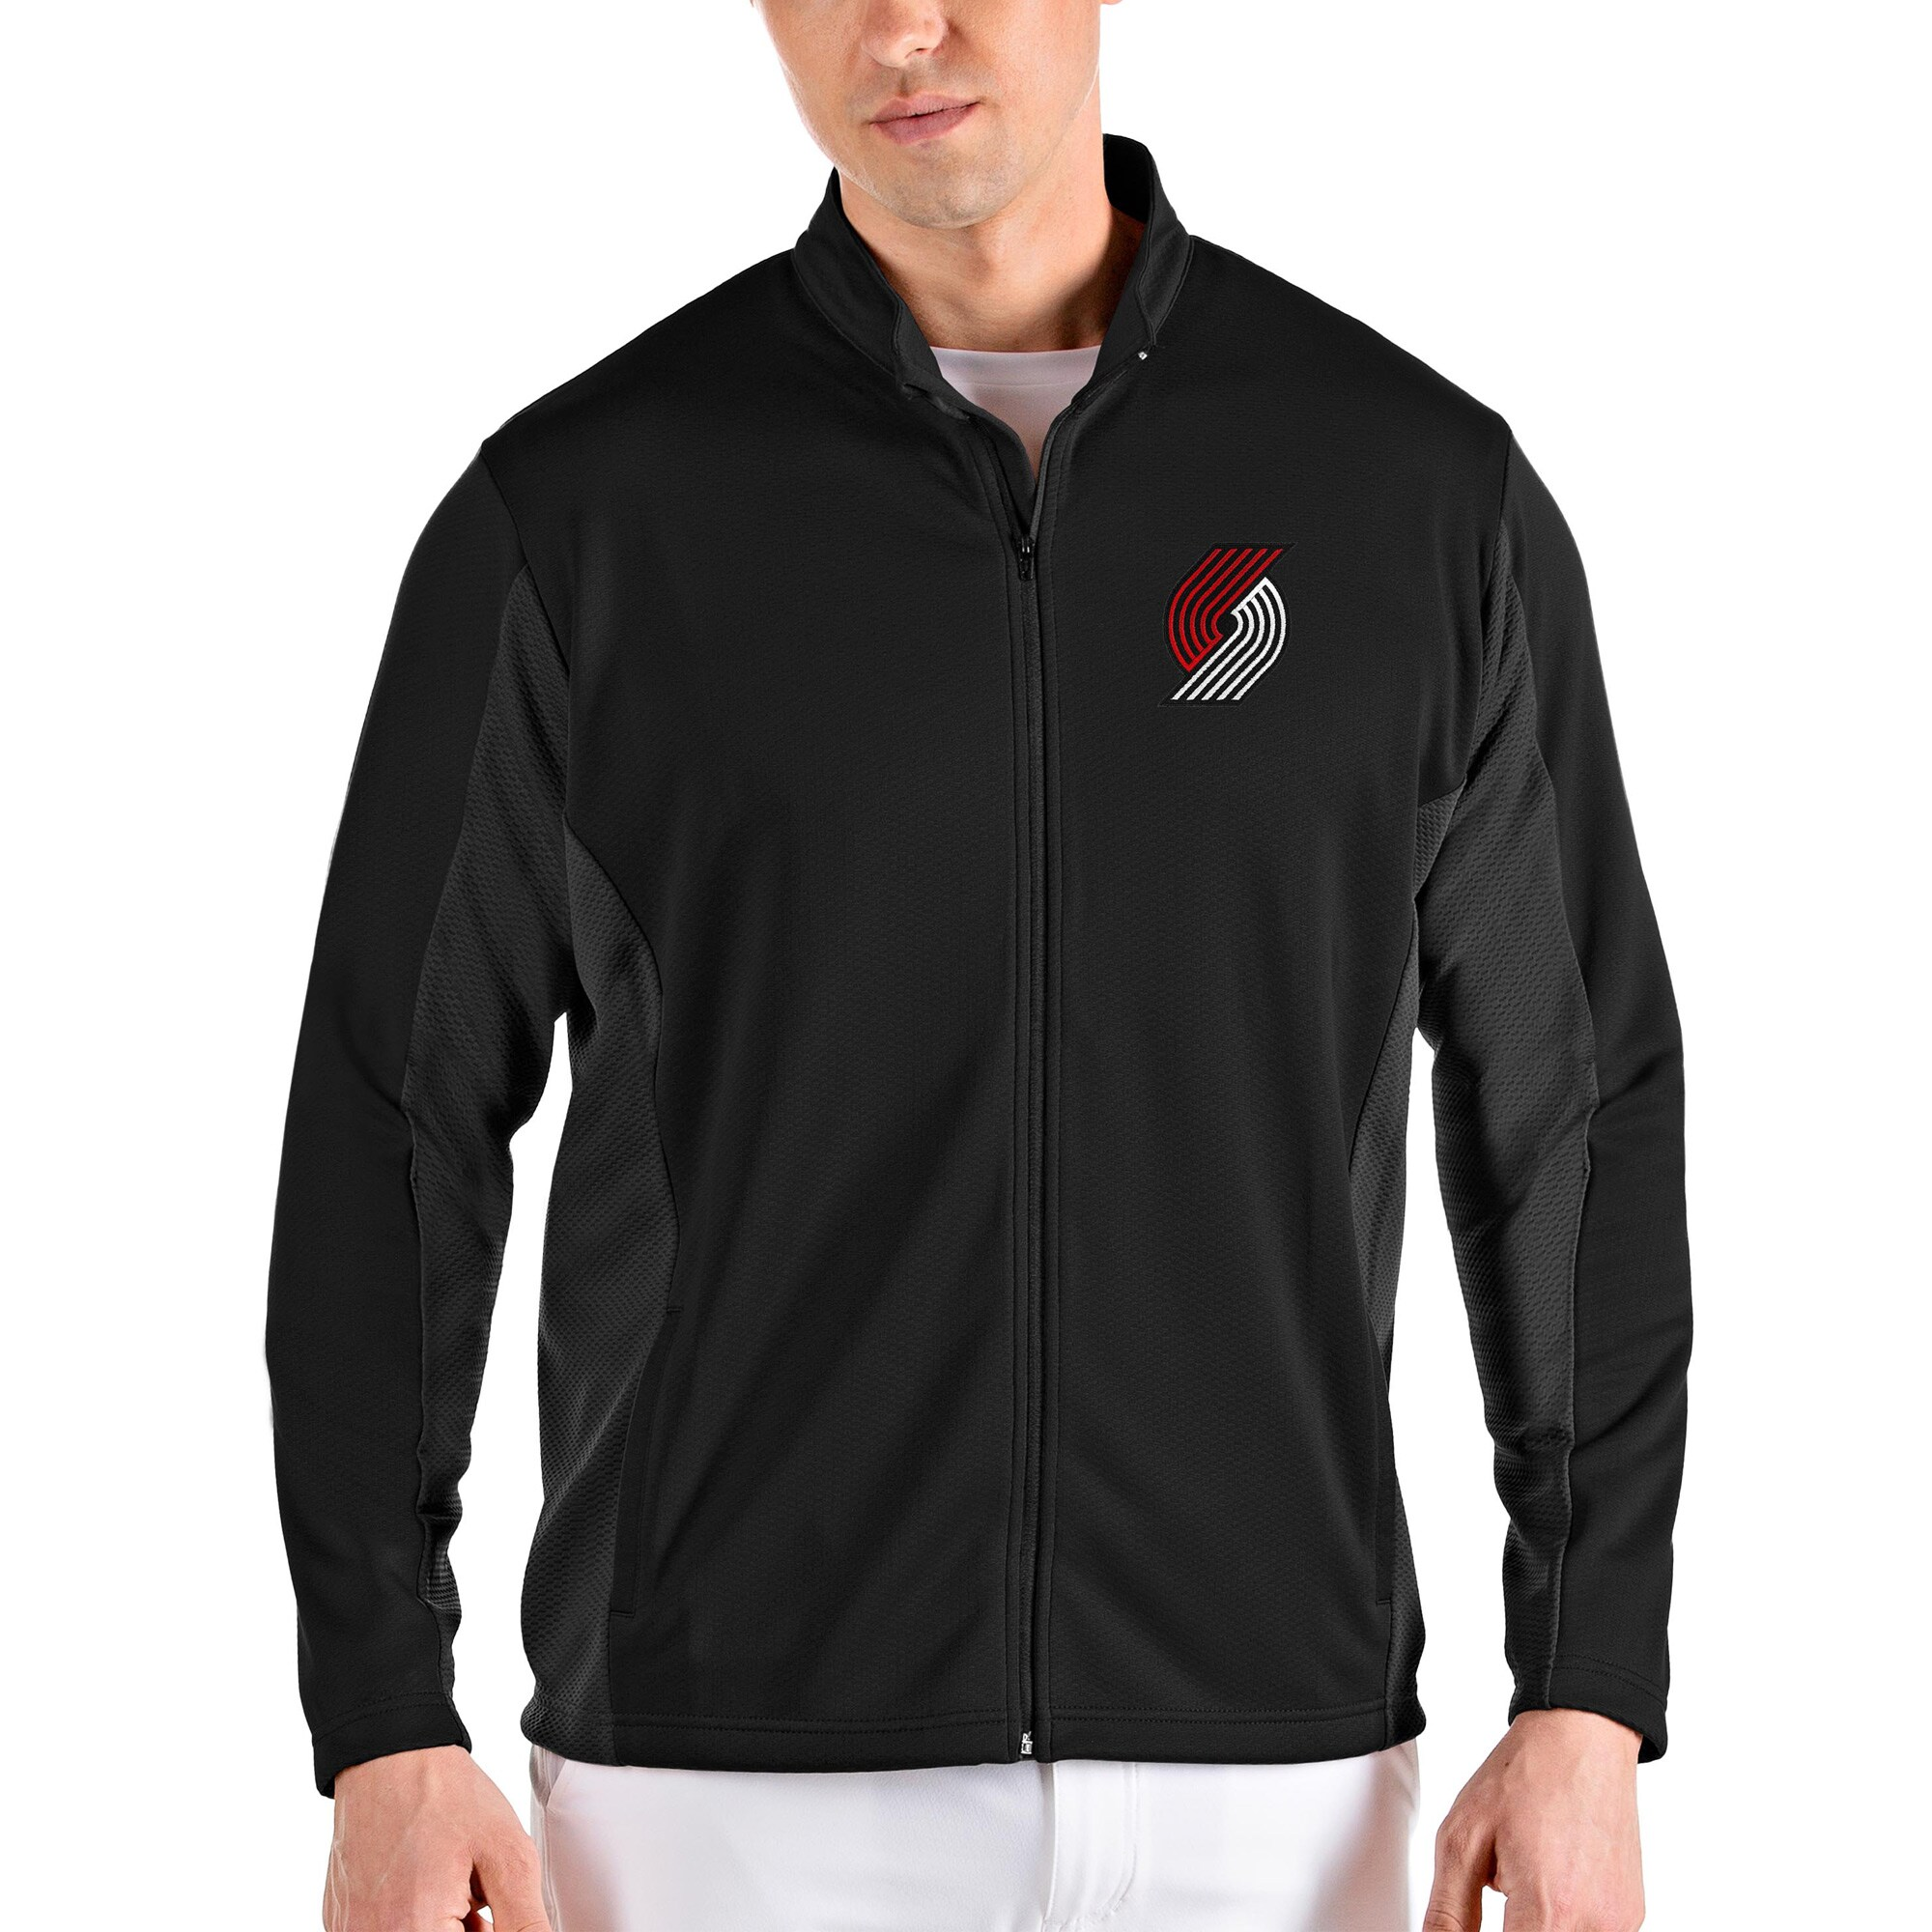 Portland Trail Blazers Antigua Passage Full-Zip Jacket - Black/Gray